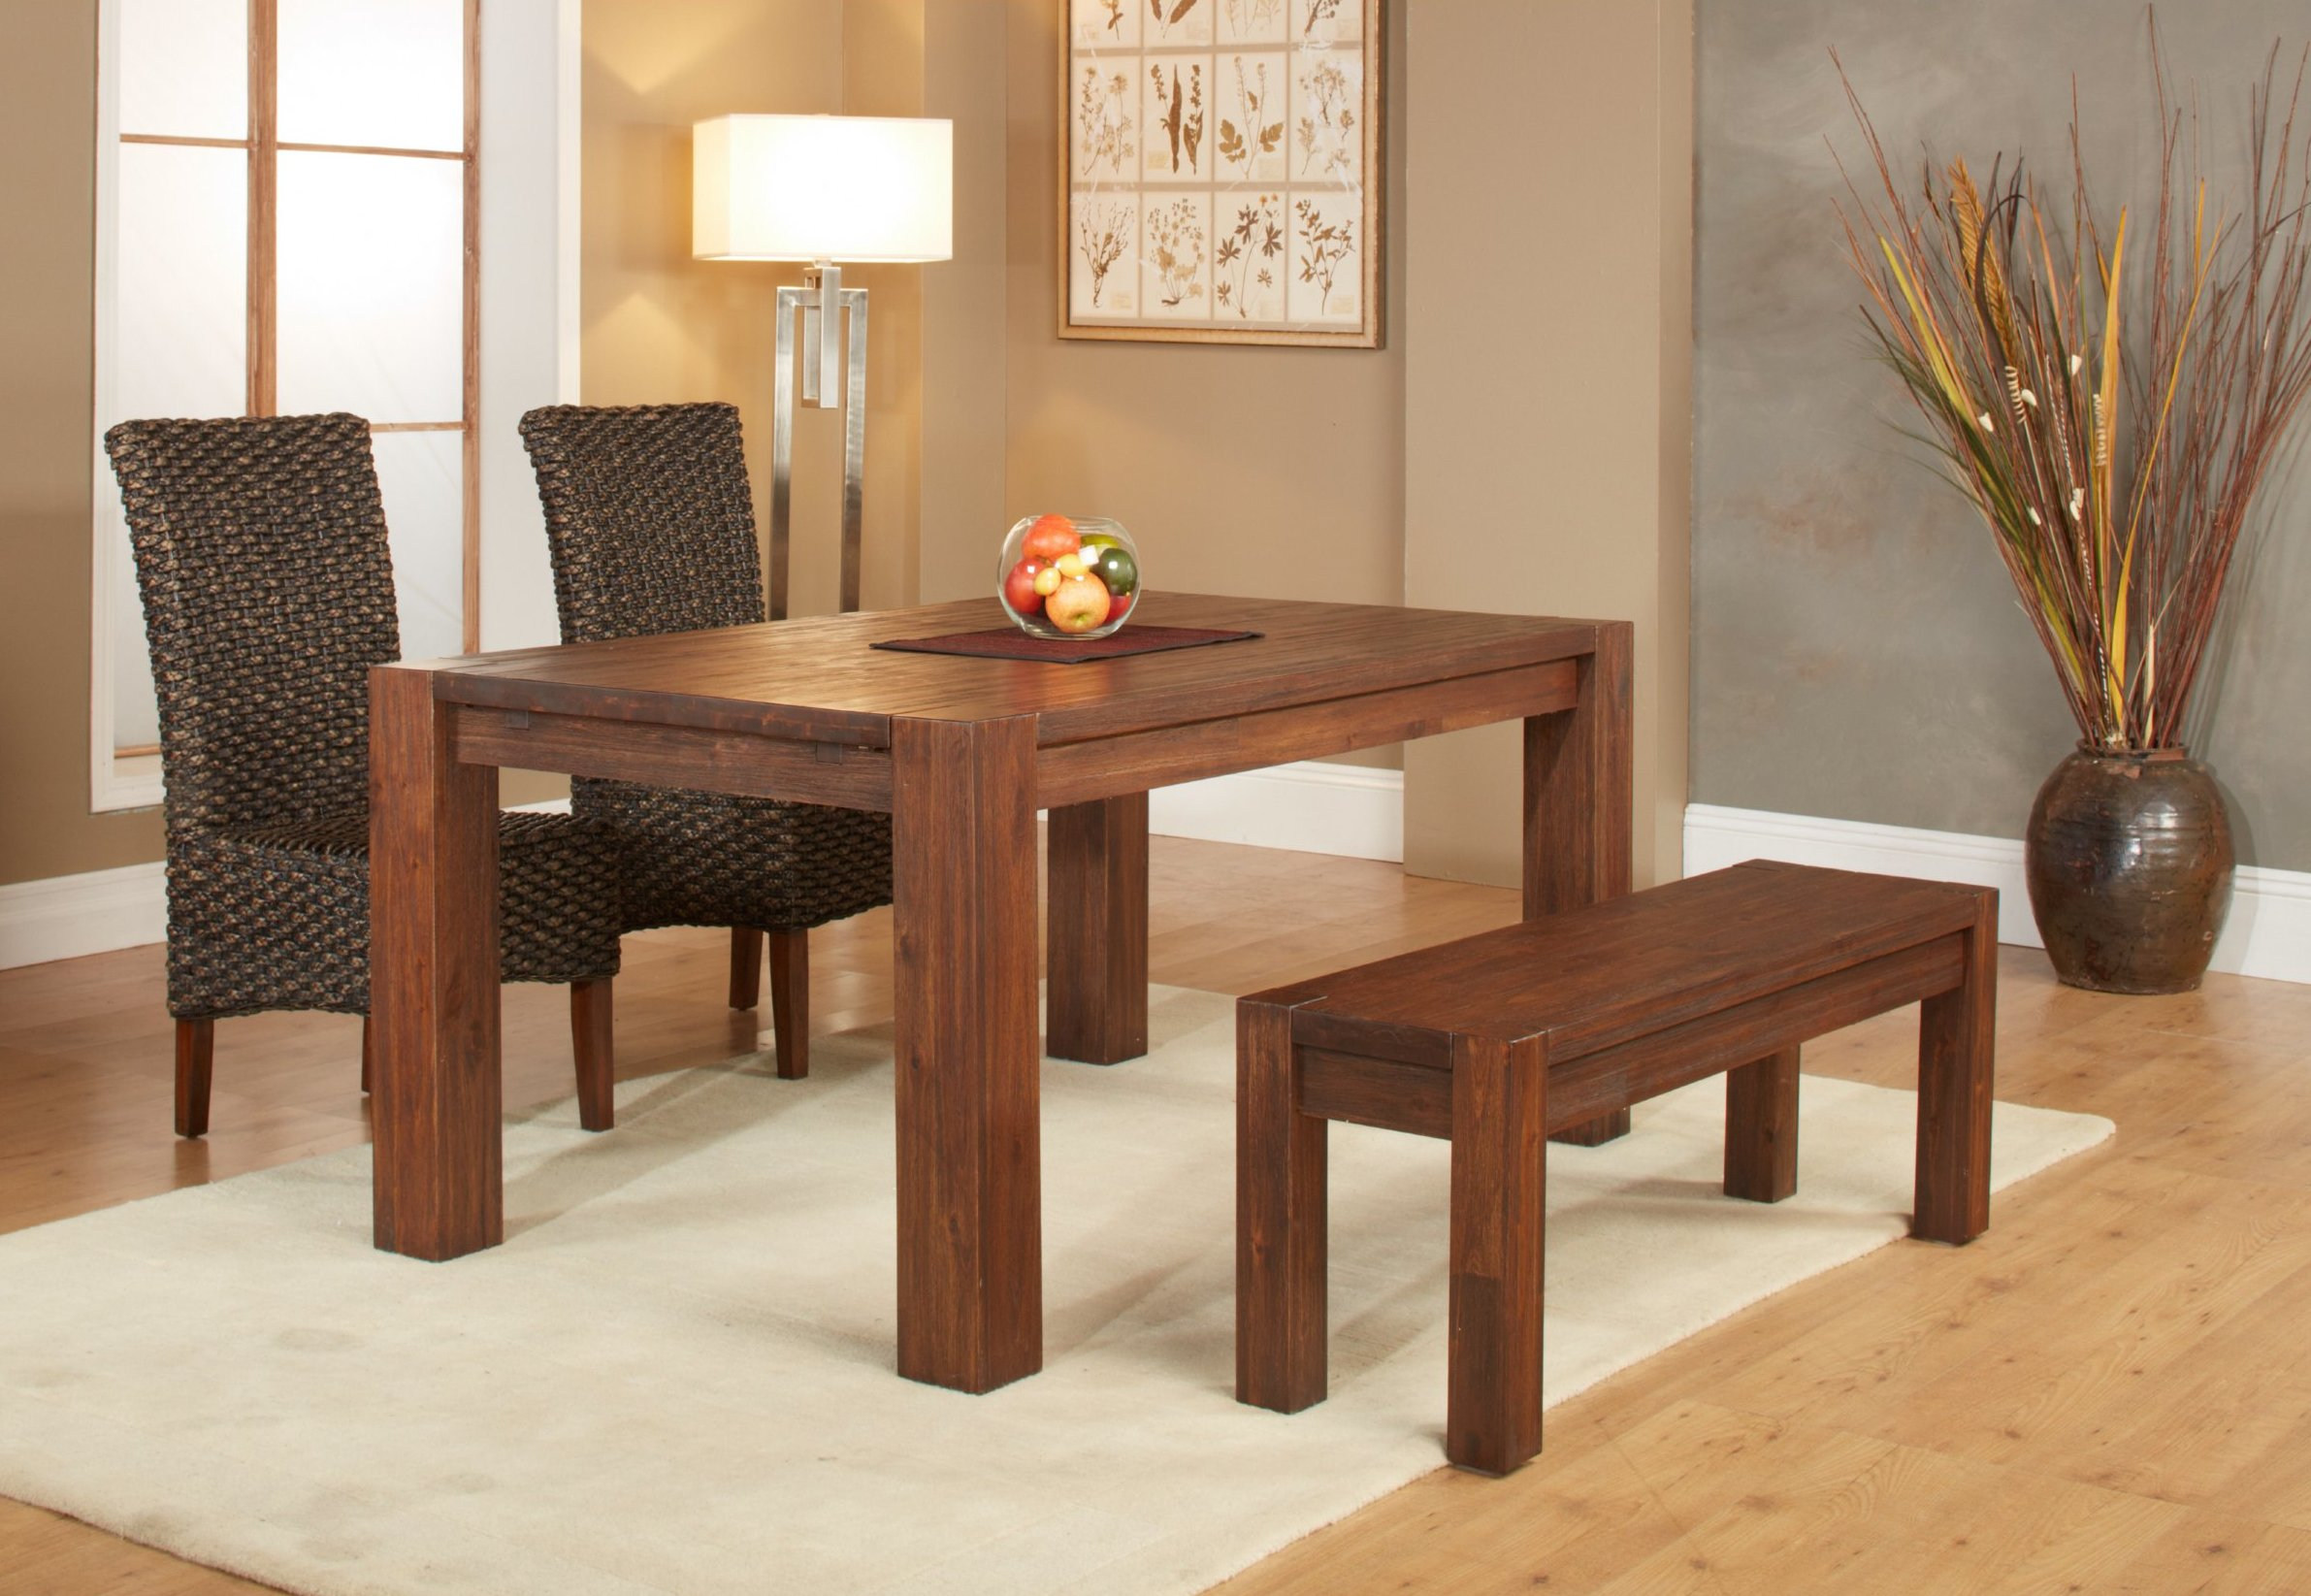 38 Types Of Dining Room Tables (Extensive Buying Guide